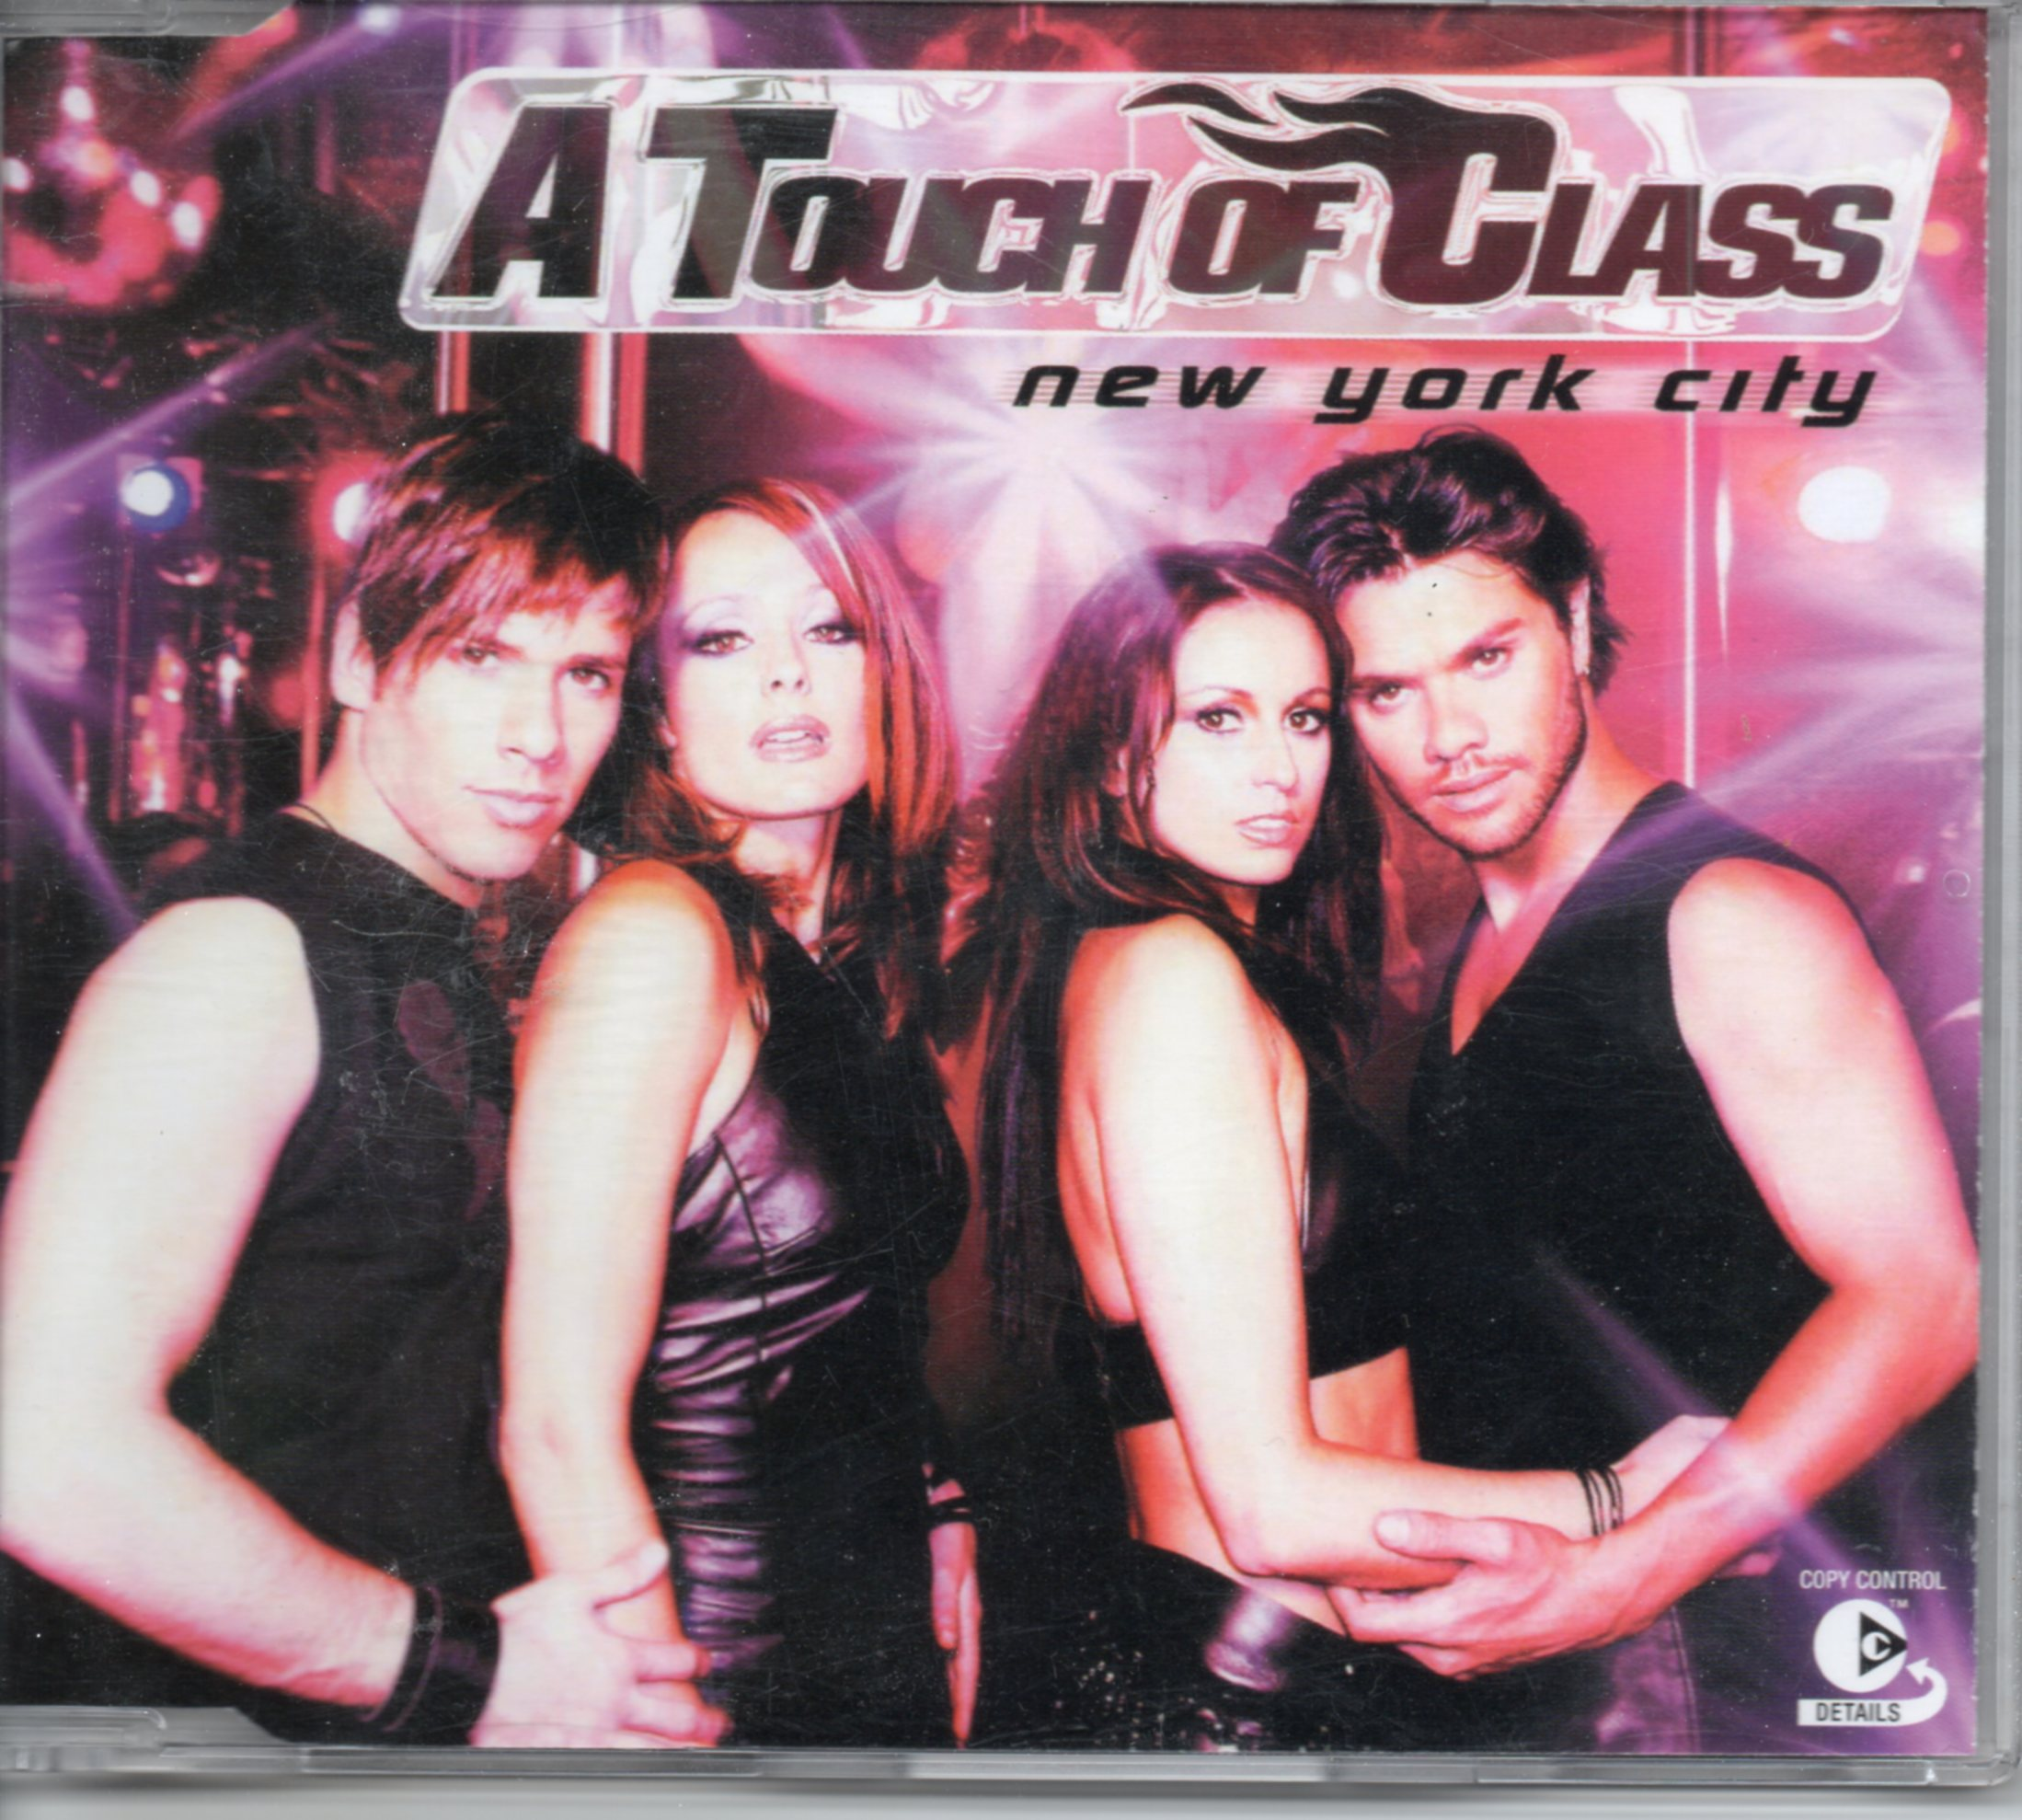 A TOUCH OF CLASS - New York City 5-Track jewel case - CD Maxi